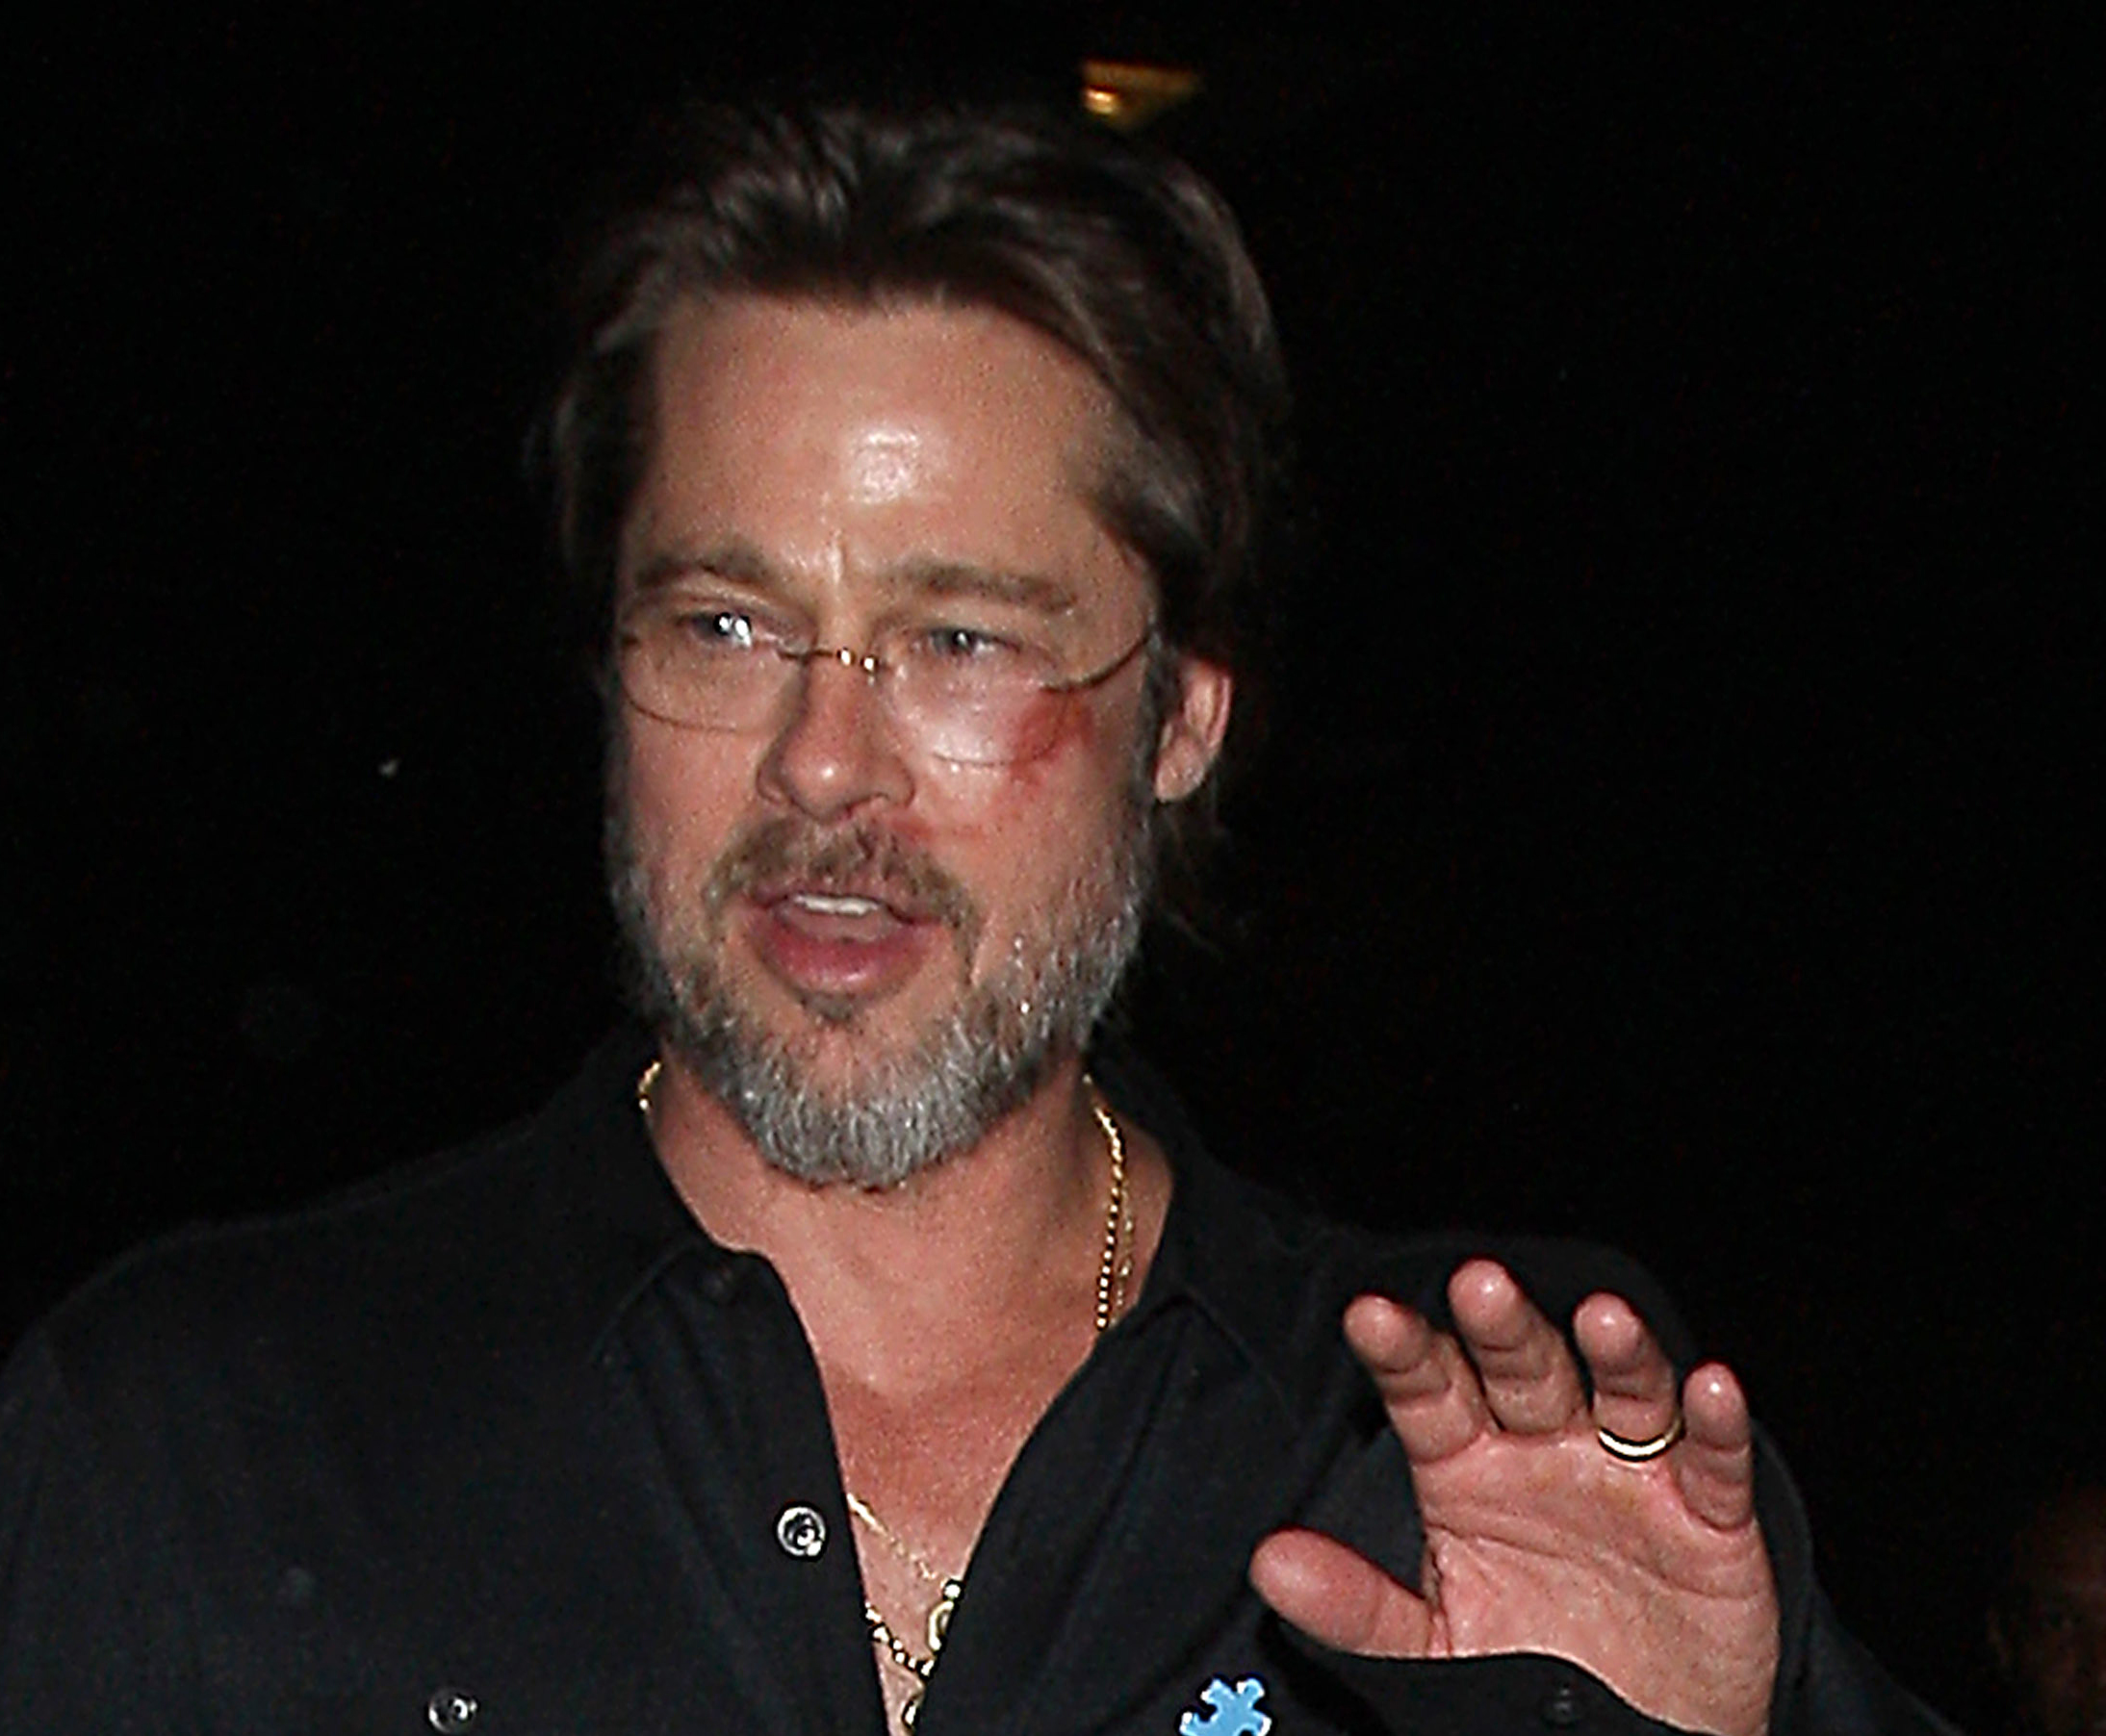 Brad Pitt Goes to The Pantages Theatre With a Bruised Face